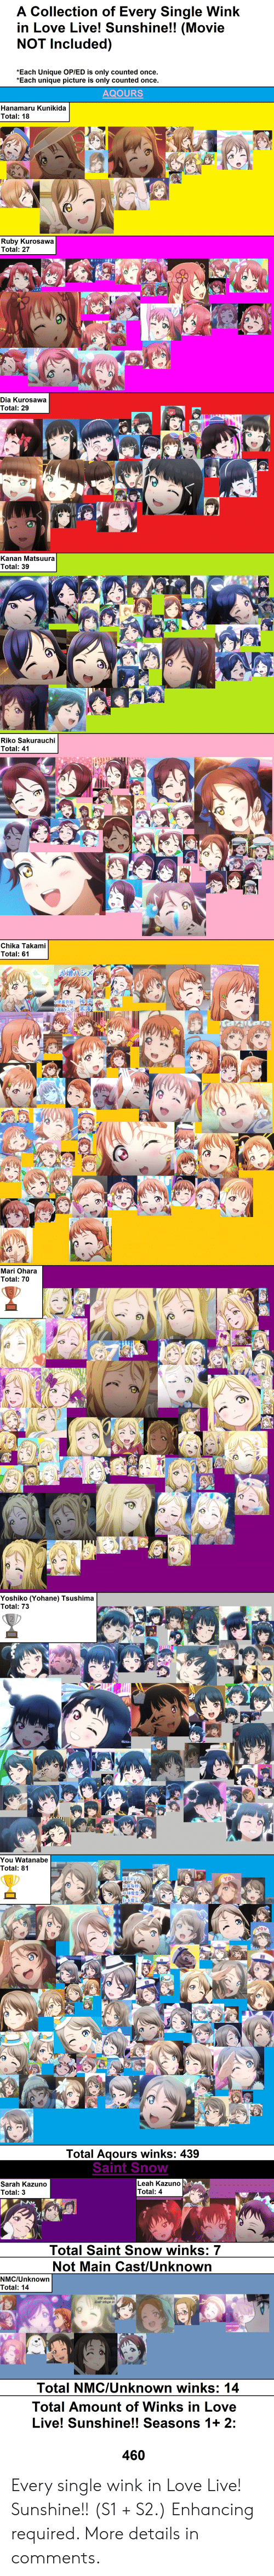 nmc: A Collection of Every Single Wink  in Love Live! Sunshine!! (Movie  NOT Included)  Each Unique OP/ED is only counted once.  Each unique picture is only counted once.  AQOURS  Hanamaru Kunikida  Total: 18  Ruby Kurosawa  Total: 27  Dia Kurosawa  Total: 29  Kanan Matsuura  Total: 39  Riko Sakurauchi  Total: 41  Chika Takami  Total: 61  ALar  Mari Ohara  Total: 70  Yoshiko (Yohane) Tsushima  Total: 73  You Watanabe  Total: 81  Total Aqours winks: 439  Saint Snow  Leah Kazuno  Total: 4  Sarah Kazuno  Total: 3  Total Saint Snow winks: 7  Not Main Cast/Unknown  NMC/Unknown  Total: 14  Total NMC/Unknown winks: 14  Total Amount of Winks in Love  Live! Sunshine!! Seasons 1+ 2:  460 Every single wink in Love Live! Sunshine!! (S1 + S2.) Enhancing required. More details in comments.